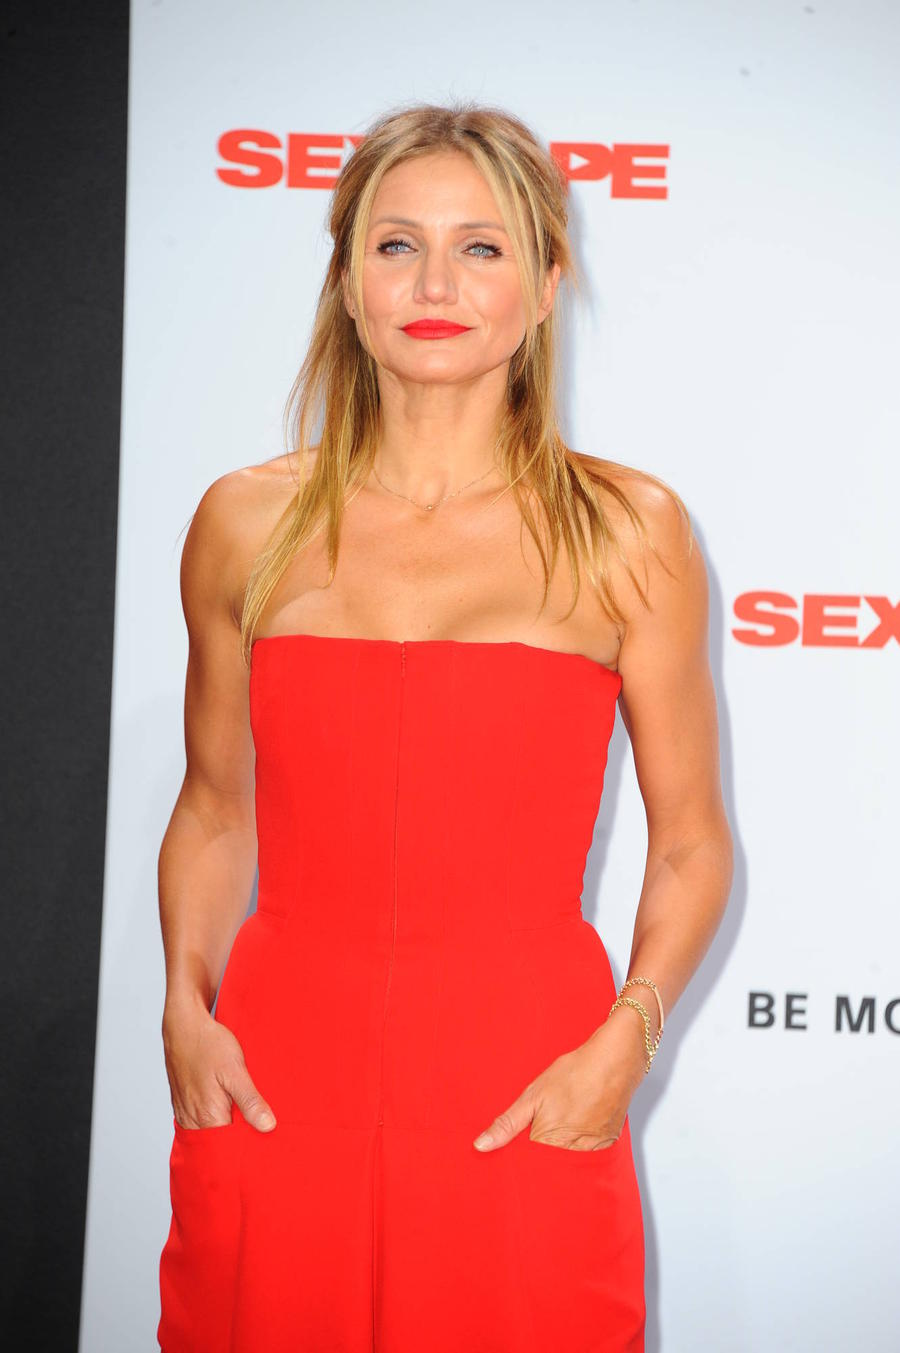 Cameron Diaz: 'Women Are Amazing'